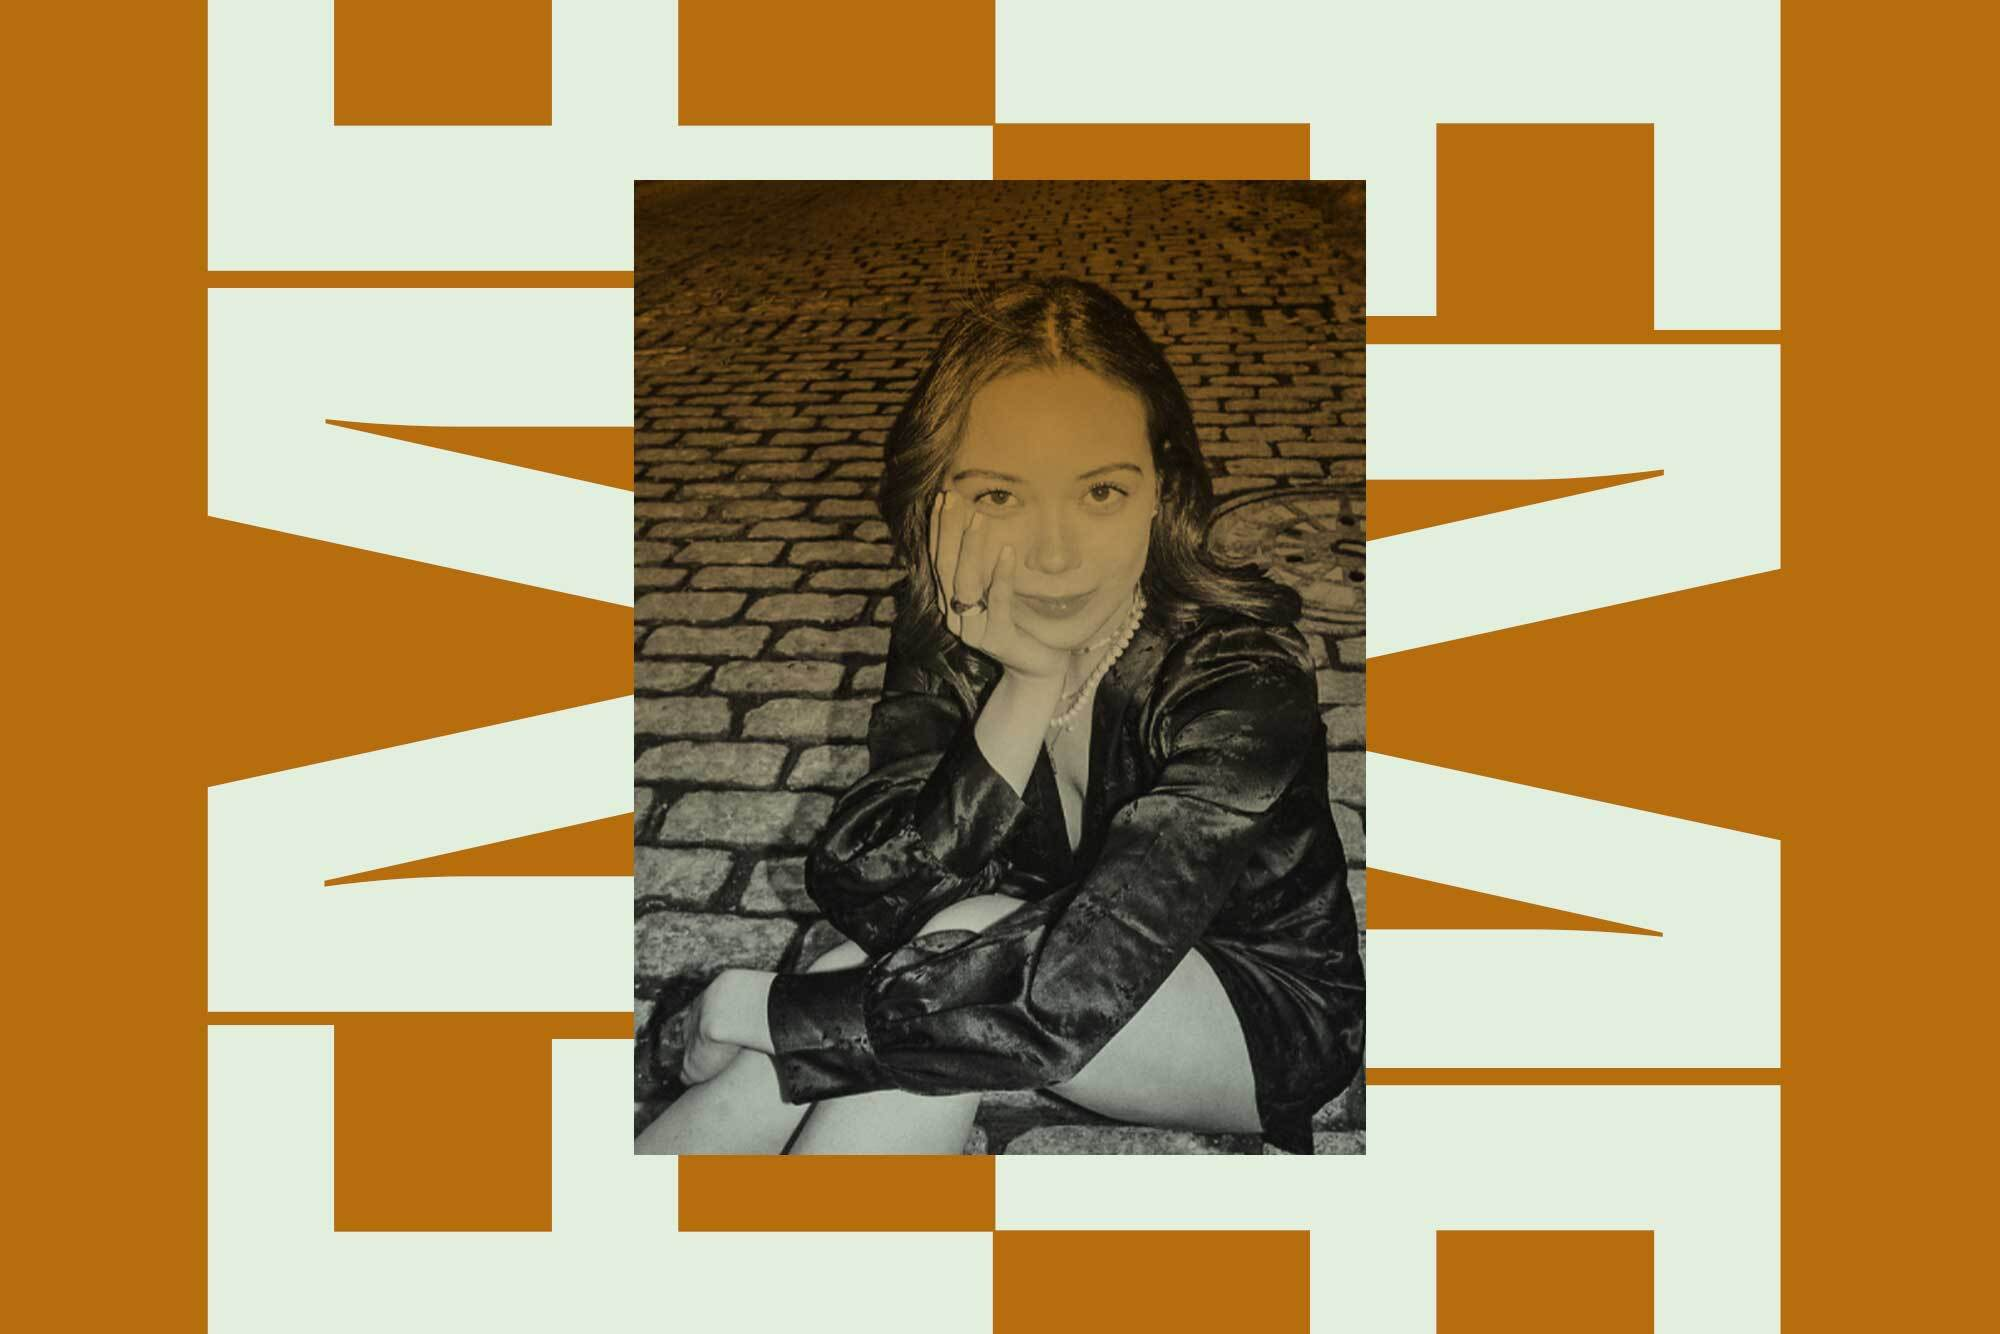 FRESH MUSIC FRIDAY: Laufey, Emmit Fenn, Japanese Breakfast, and More